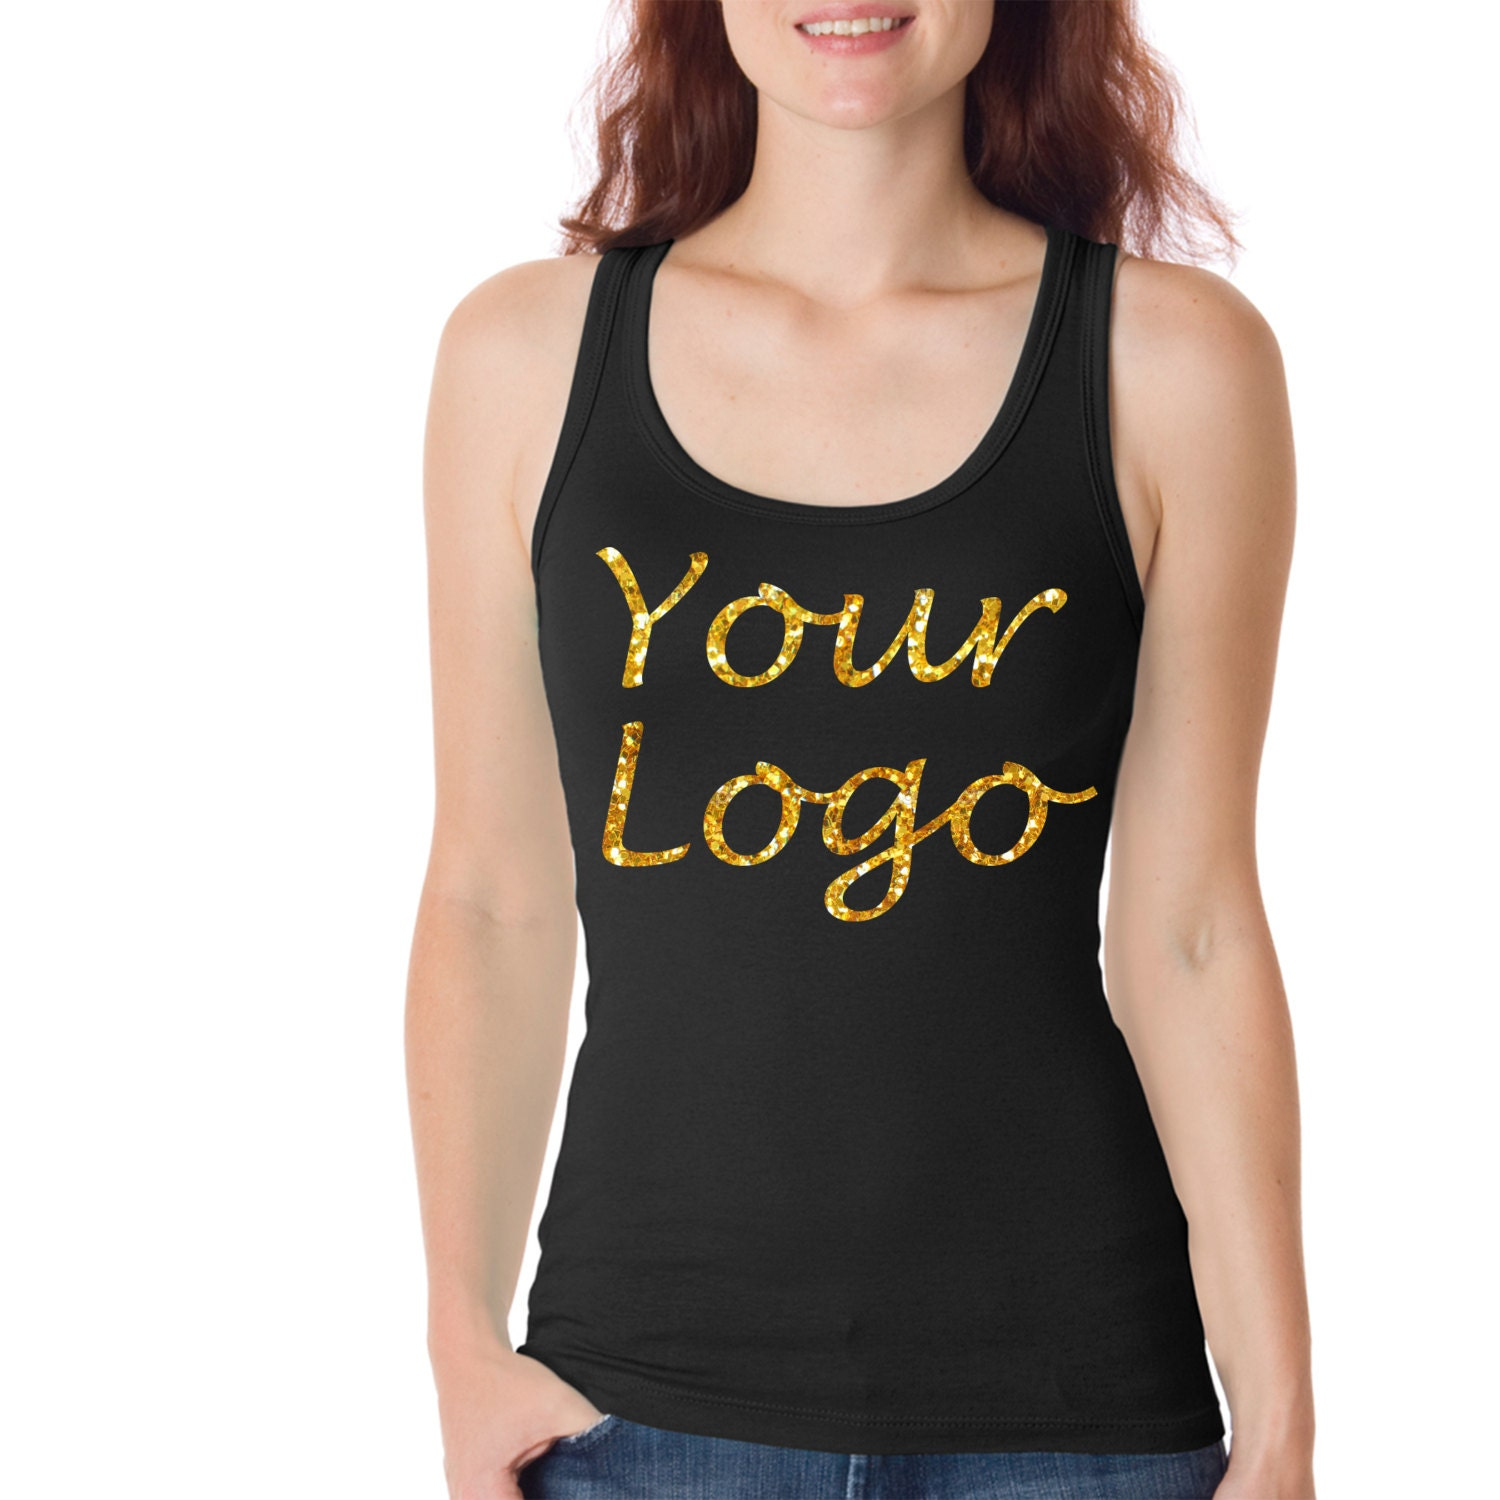 Put Your Logo Design Name Or Image On A Shirt